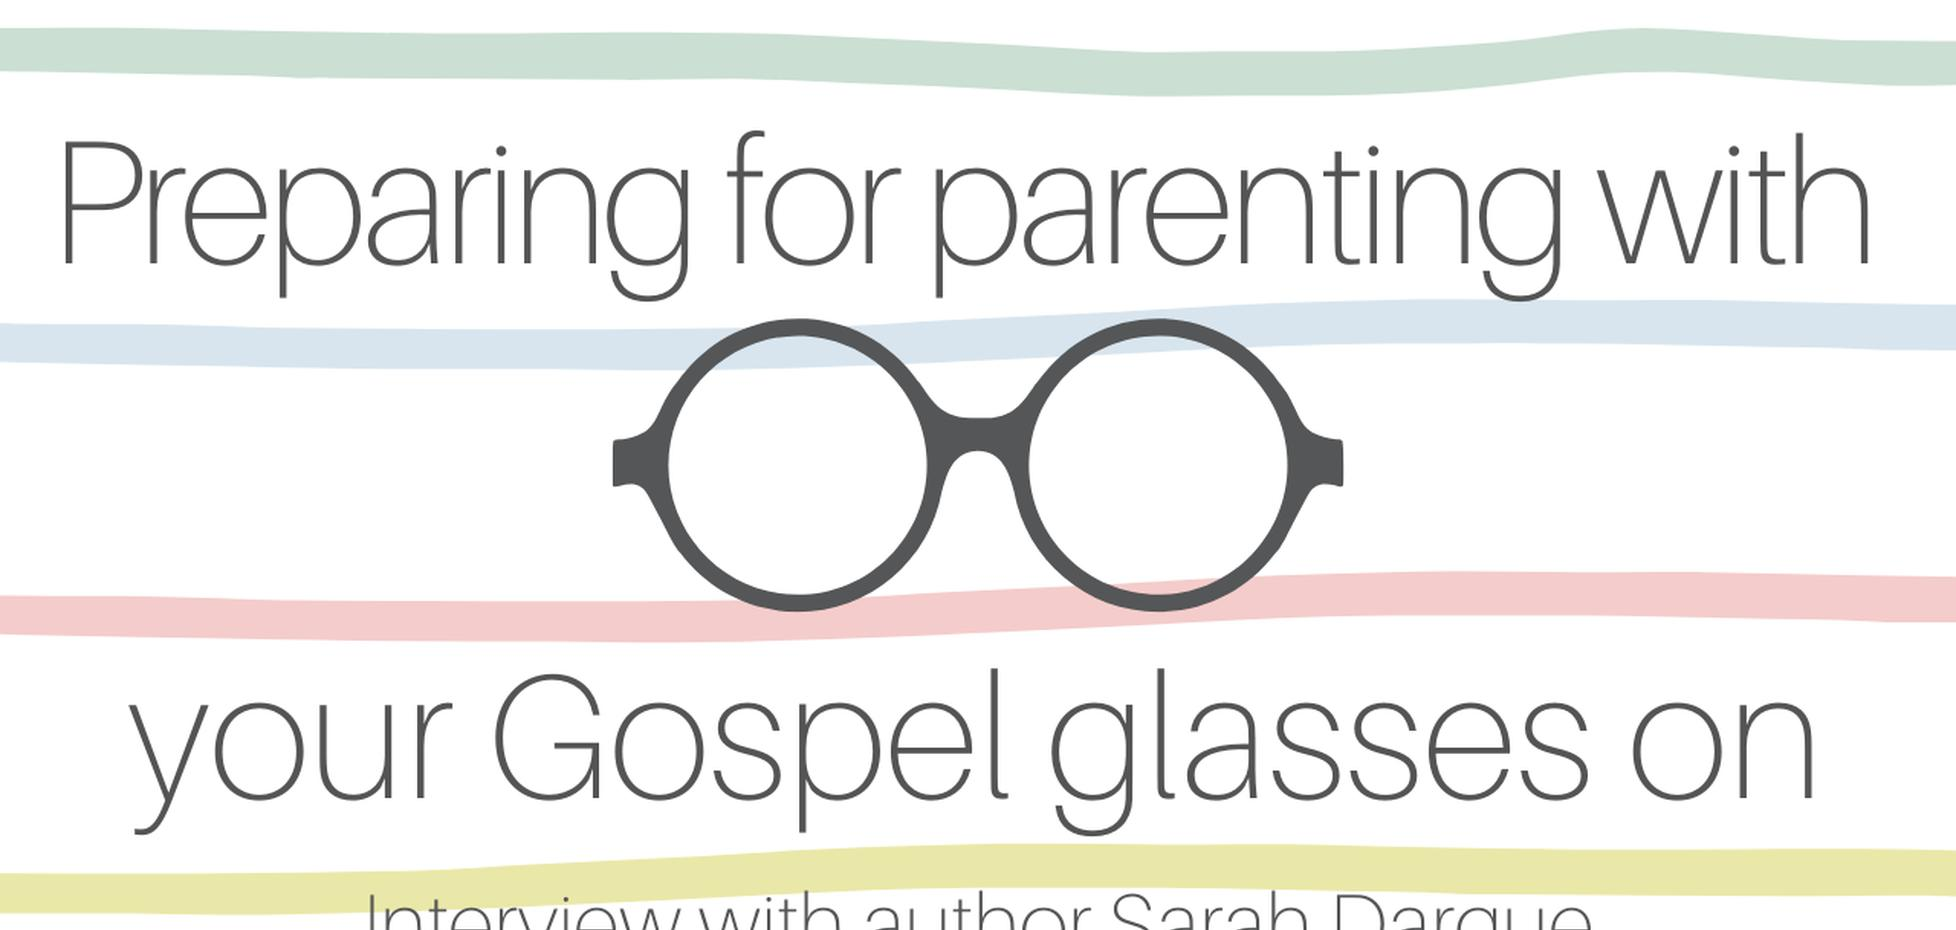 Preparing for Parenting with the Gospel